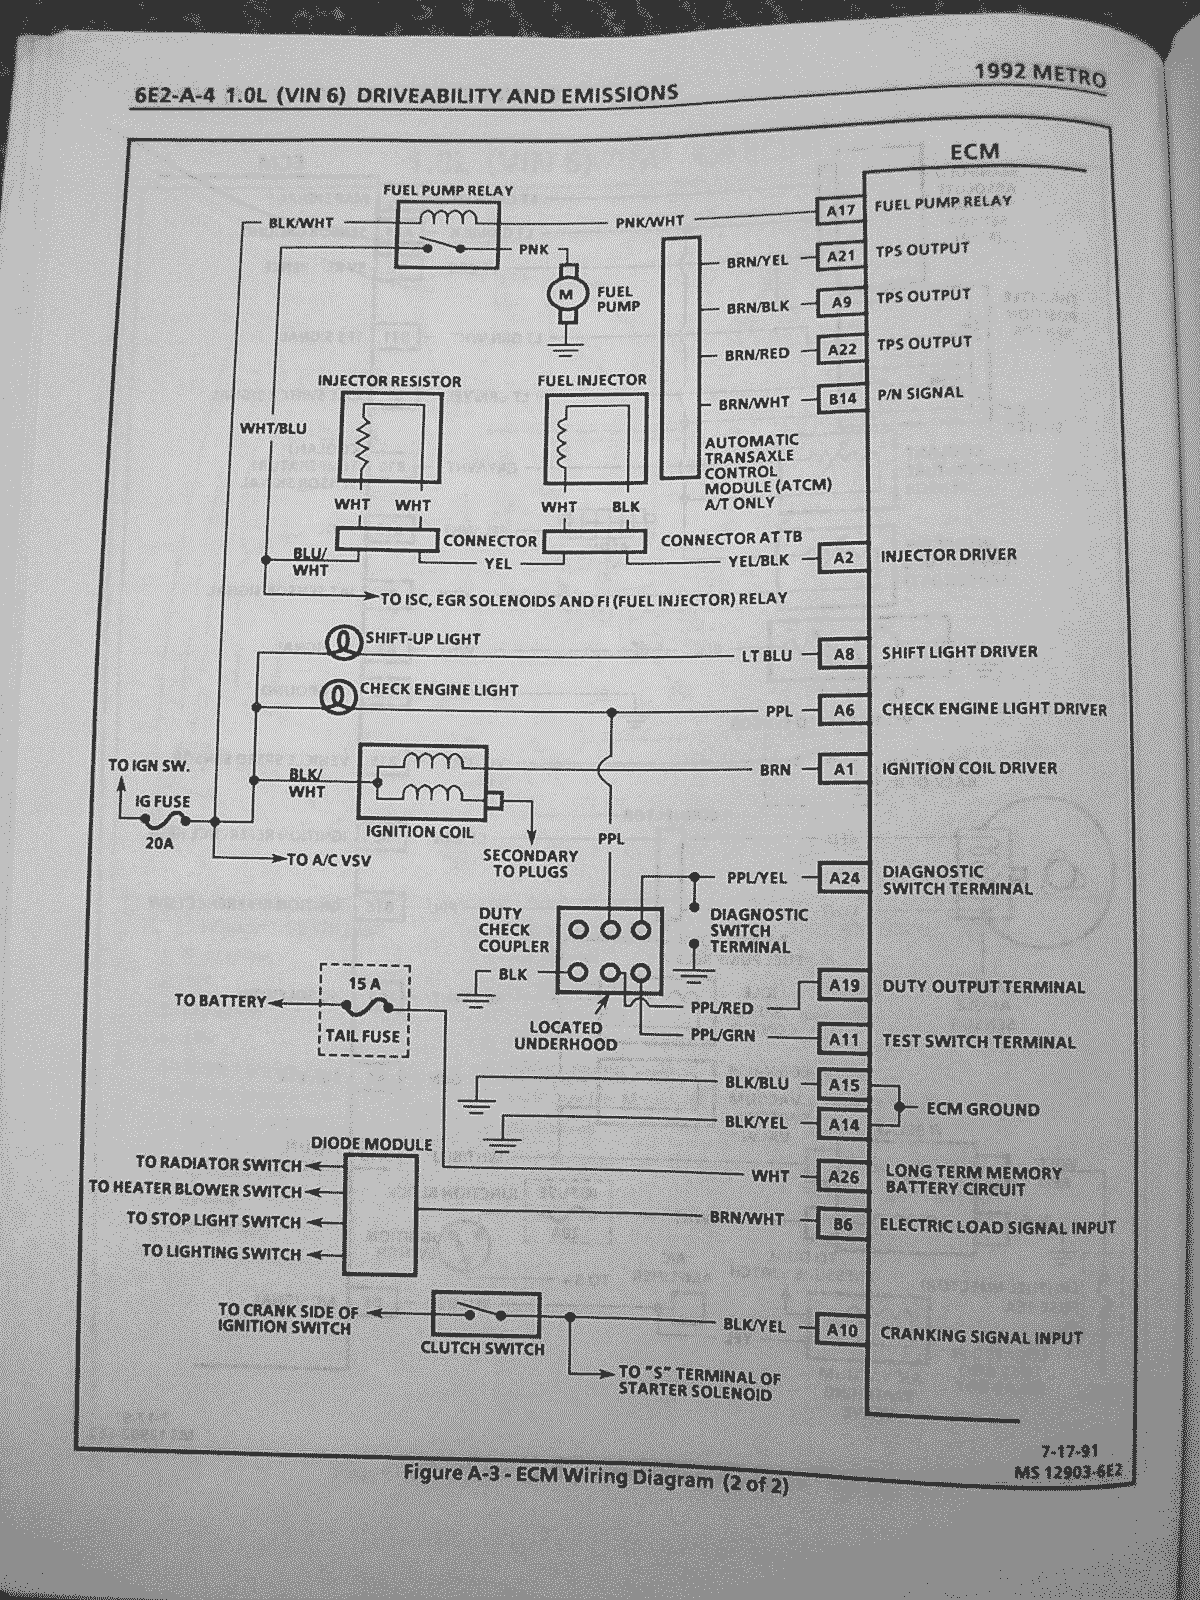 6e2 a 4 geo metro and suzuki swift wiring diagrams metroxfi com  at crackthecode.co